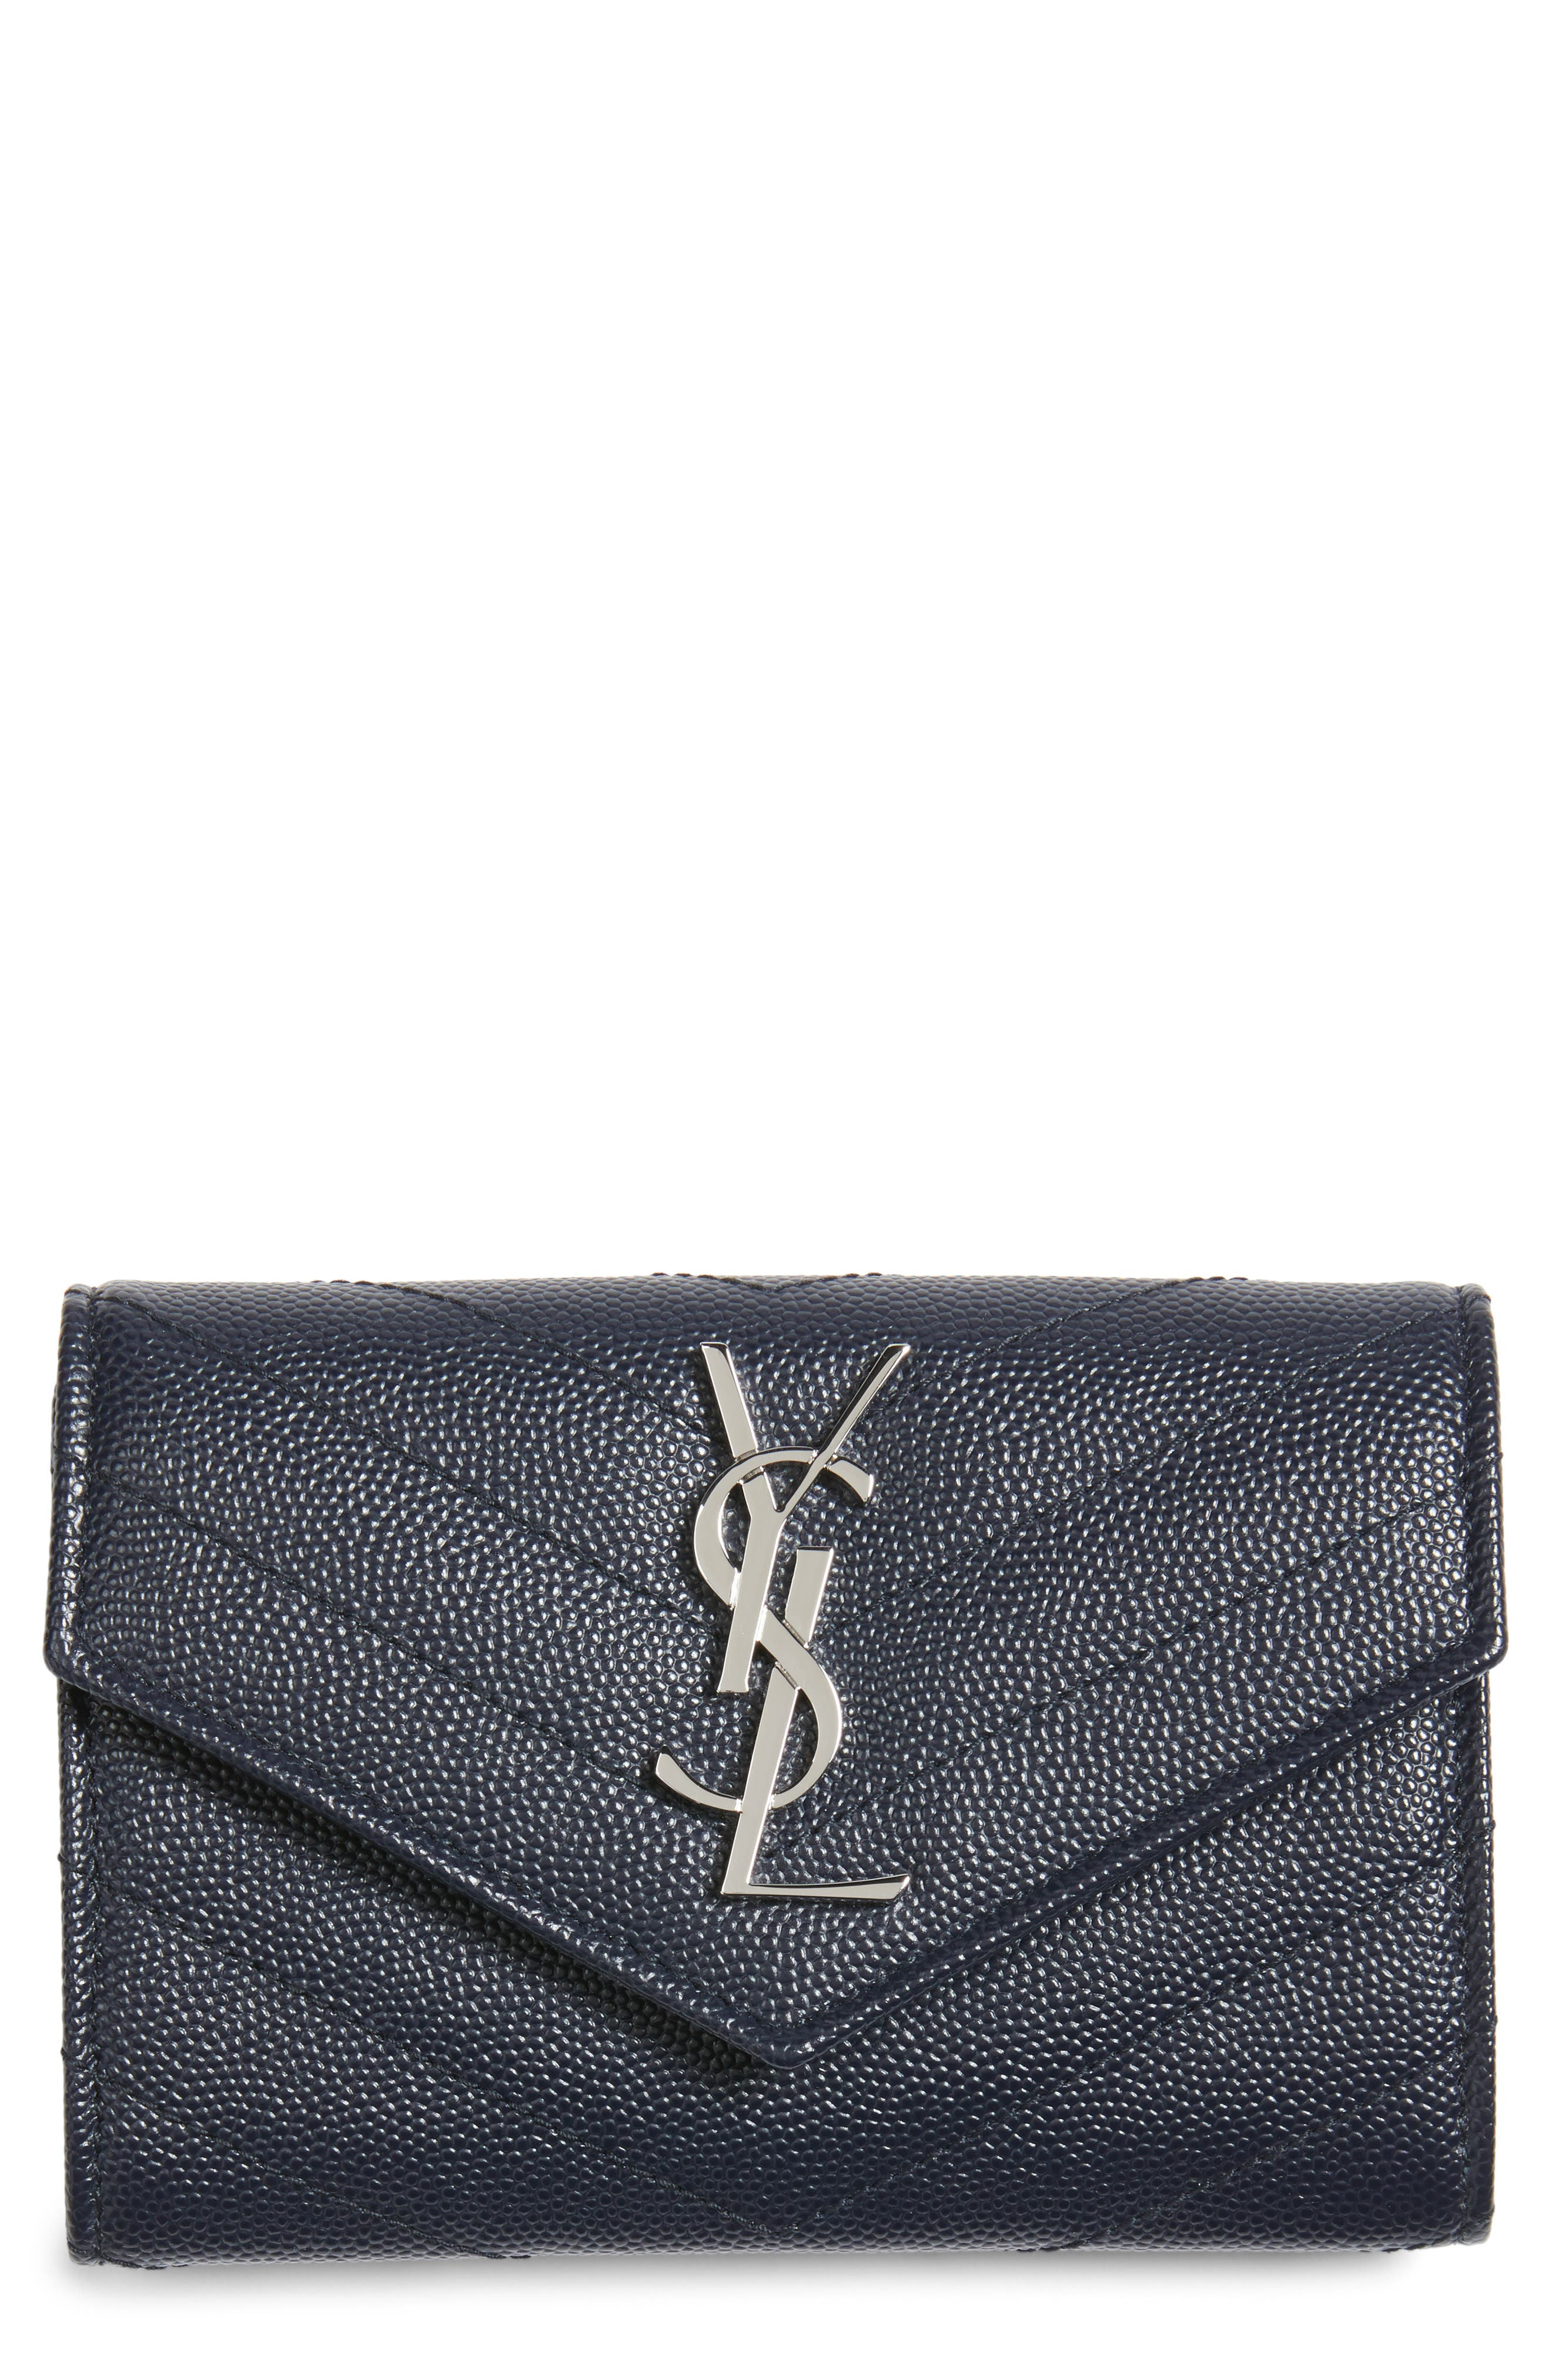 Saint Laurent 'Small Monogram' Leather French Wallet